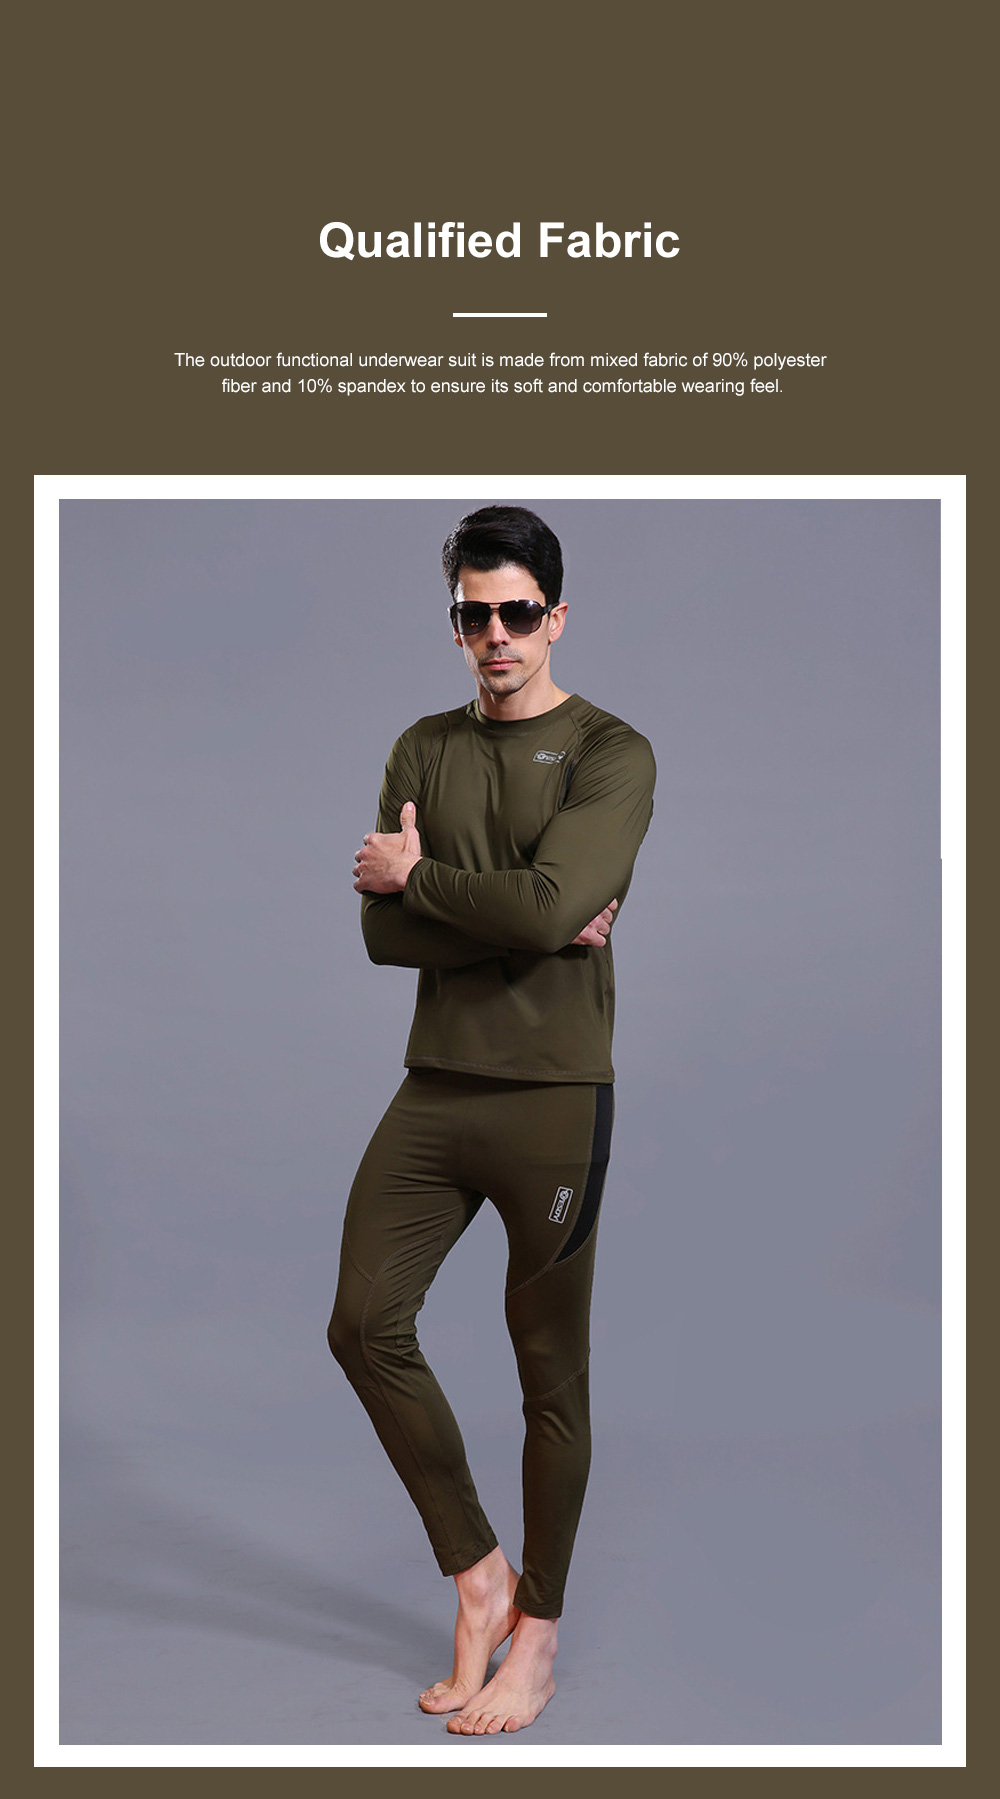 Outdoor Functional Underwear Suit for Outdoors Climbing Bicycle Riding Thermal Fleece Underwear Sweat Suit PT Uniform 2